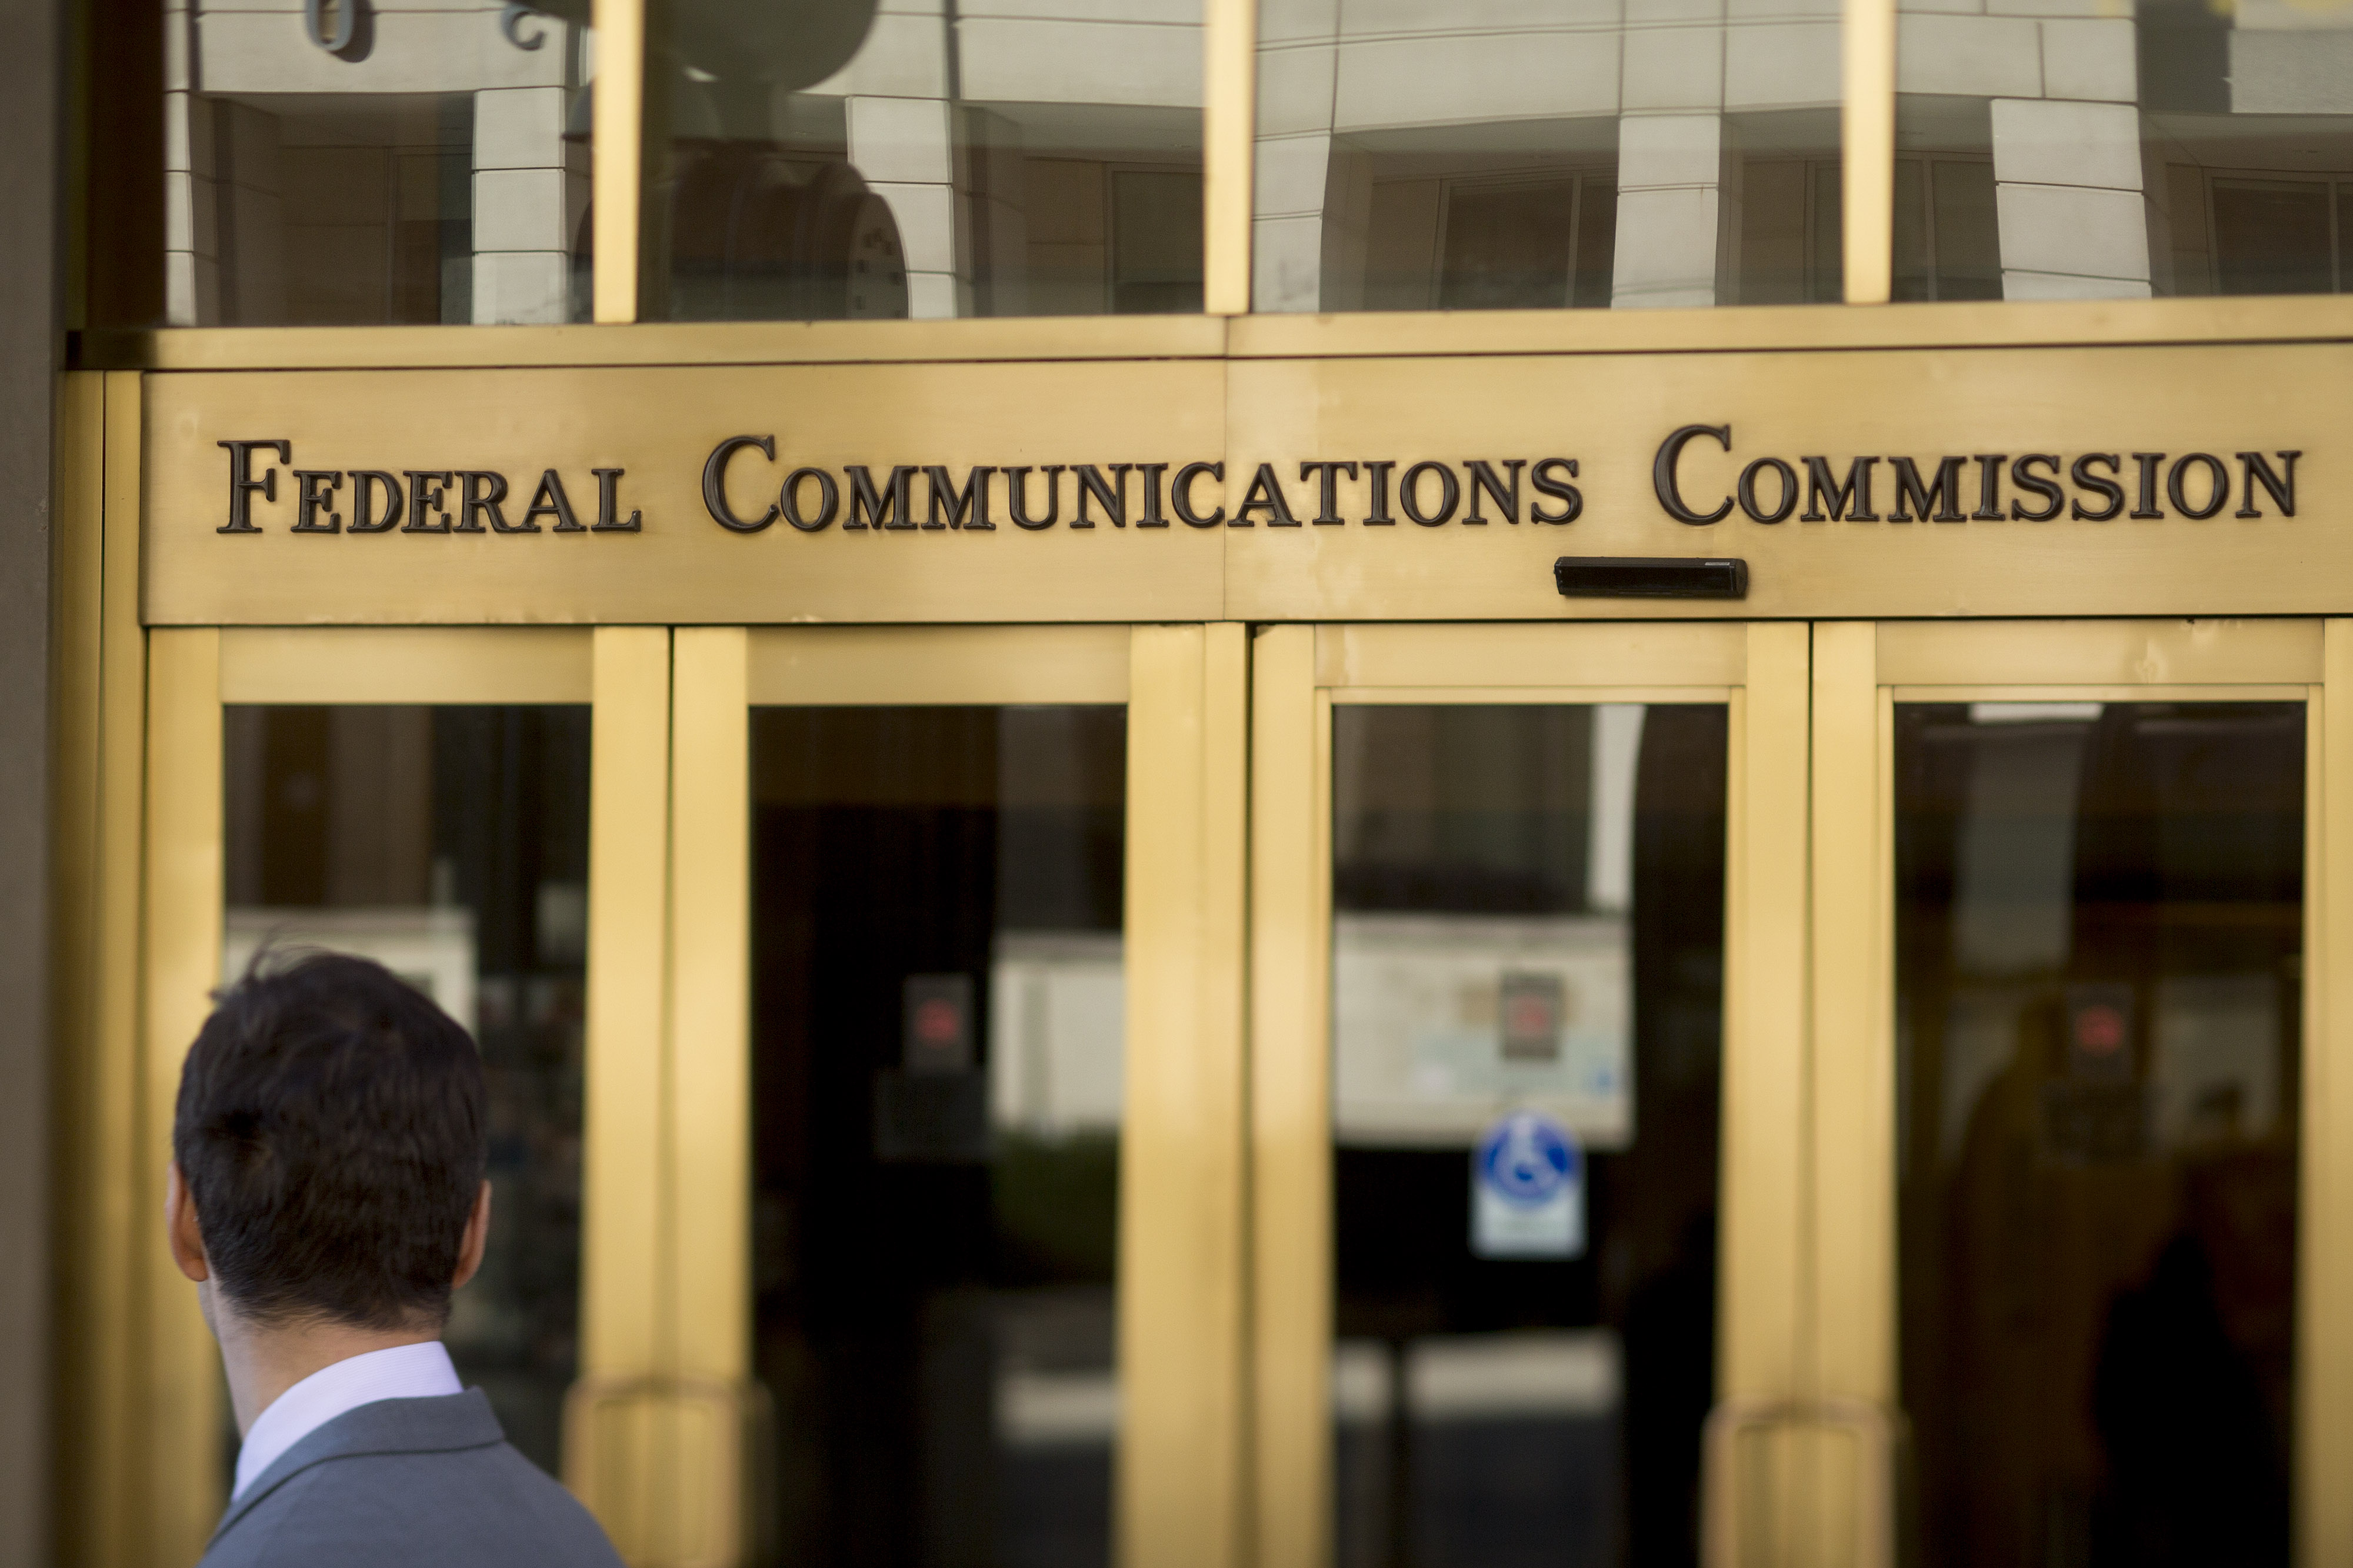 Federal Communications Commission (FCC) headquarters